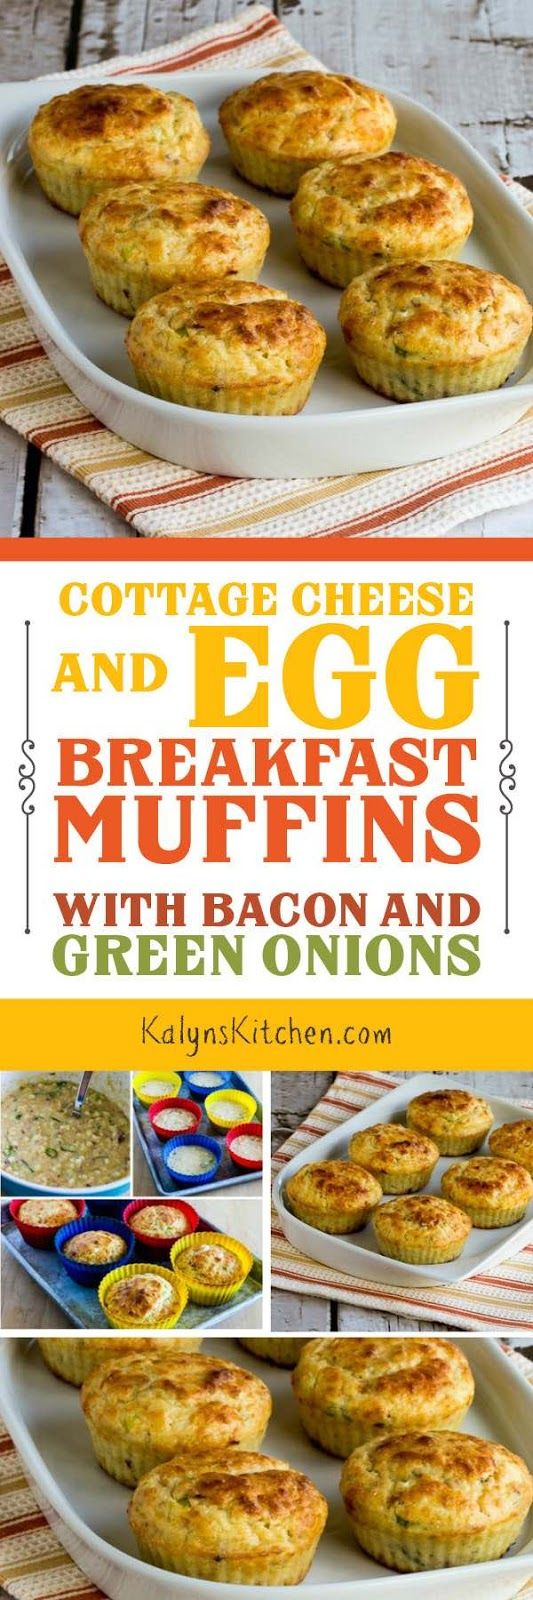 I LOVE these Cottage Cheese  and Egg Breakfast Muffins with Bacon and Green Onions; and this tasty recipe reheats well so you can make them on the weekend and reheat all week. These breakfast muffins are low-carb, low-glycemic, and South Beach Diet friendly, and they can easily be gluten-free if you sub quinoa flakes for the white whole wheat flour! [found on KalynsKitchen.com]